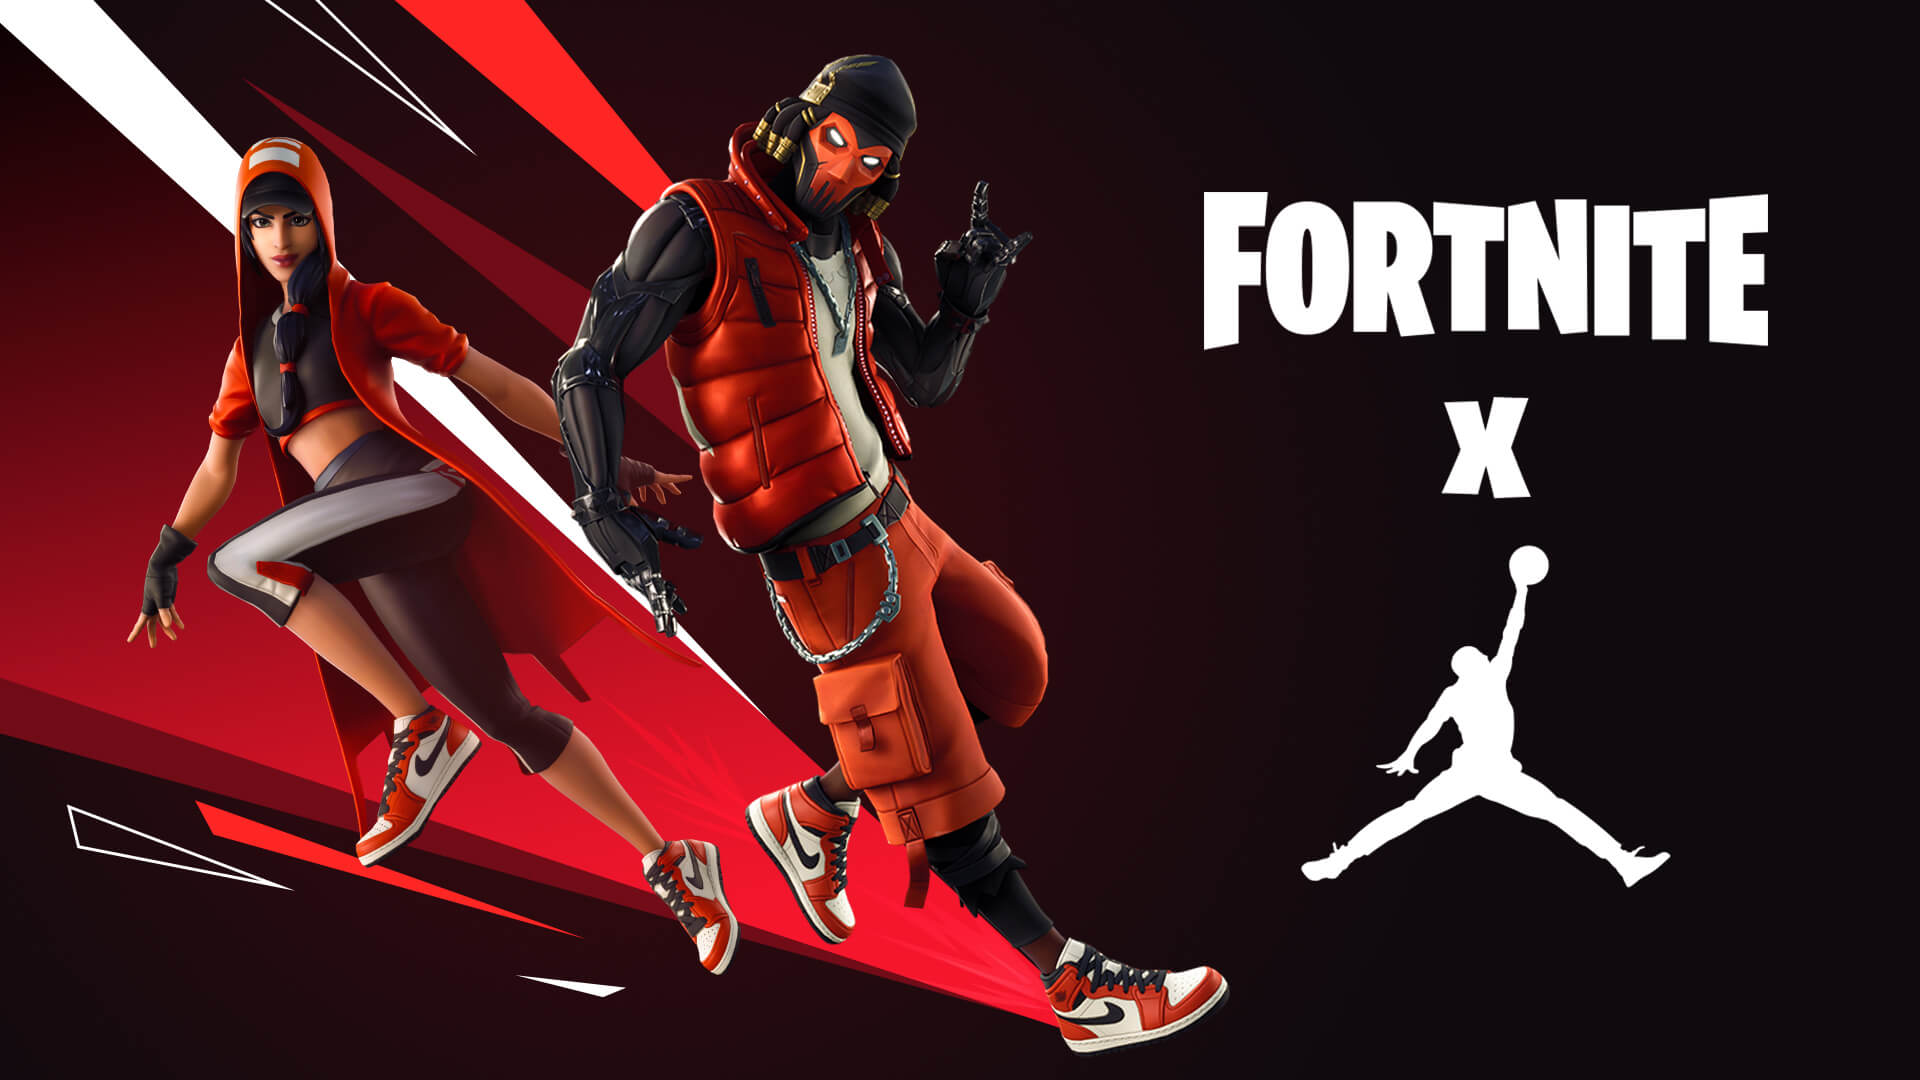 Fortnite Clutch and Grind Jumpman skins